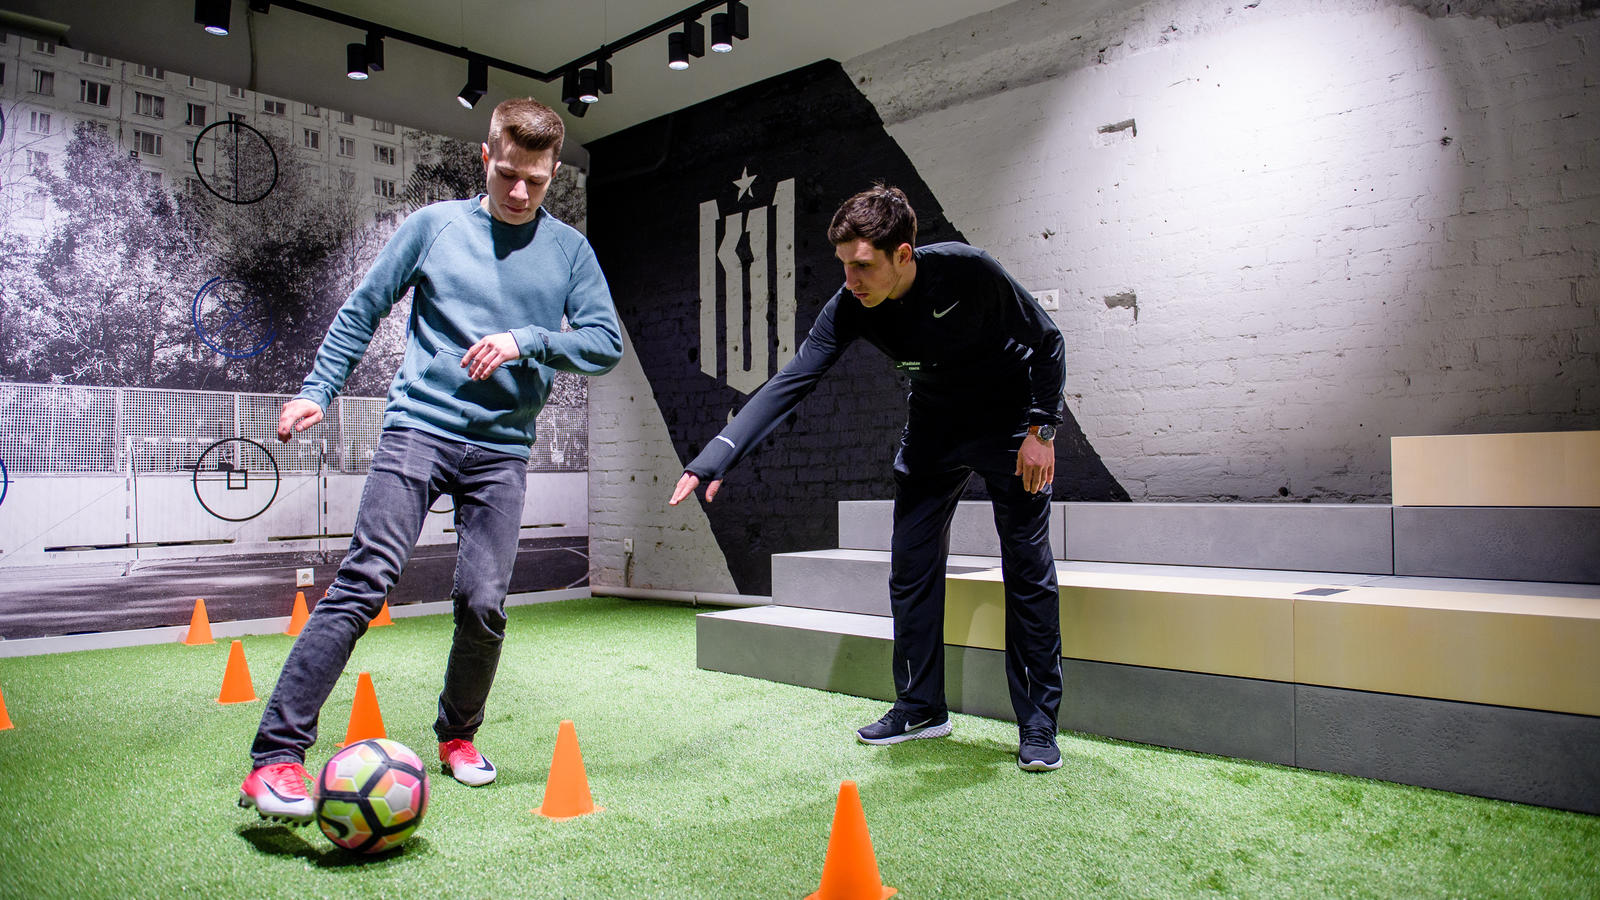 online store 5bf49 d7a92 First Look  Inside Nike Moscow 2. Nike+ Football Trial Zone  ...